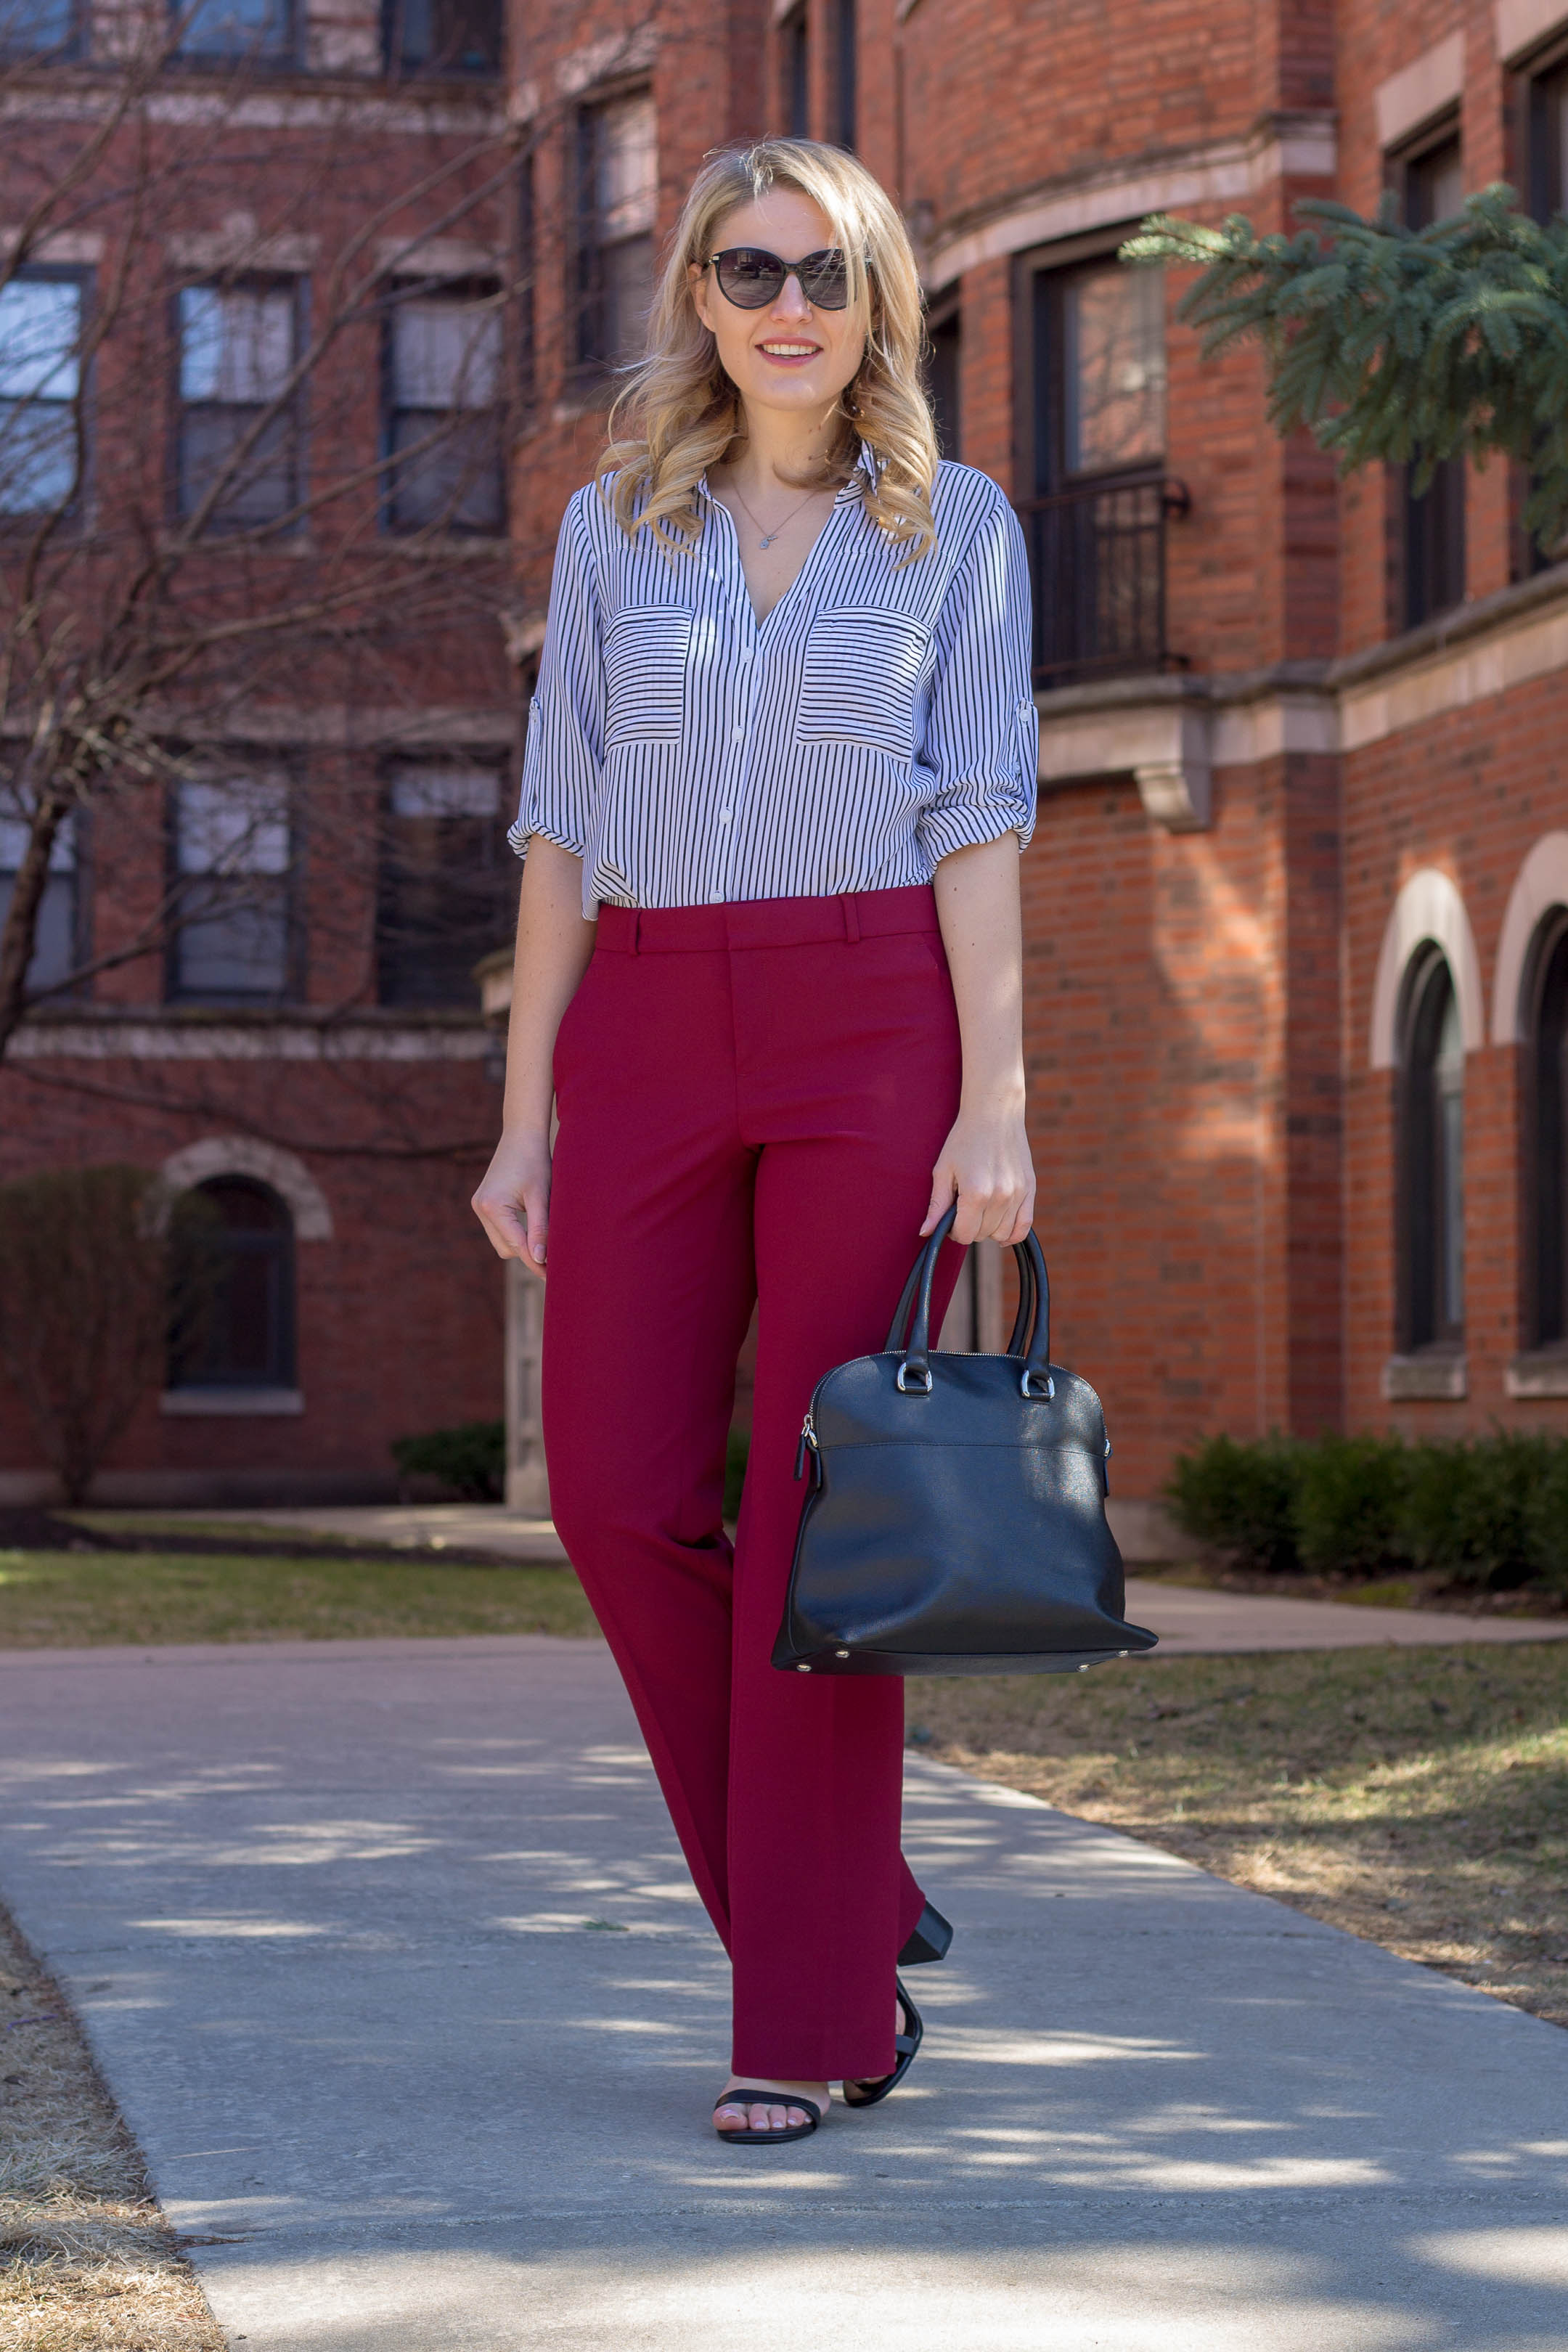 A spring corporate outfit for women looking for new spring staples